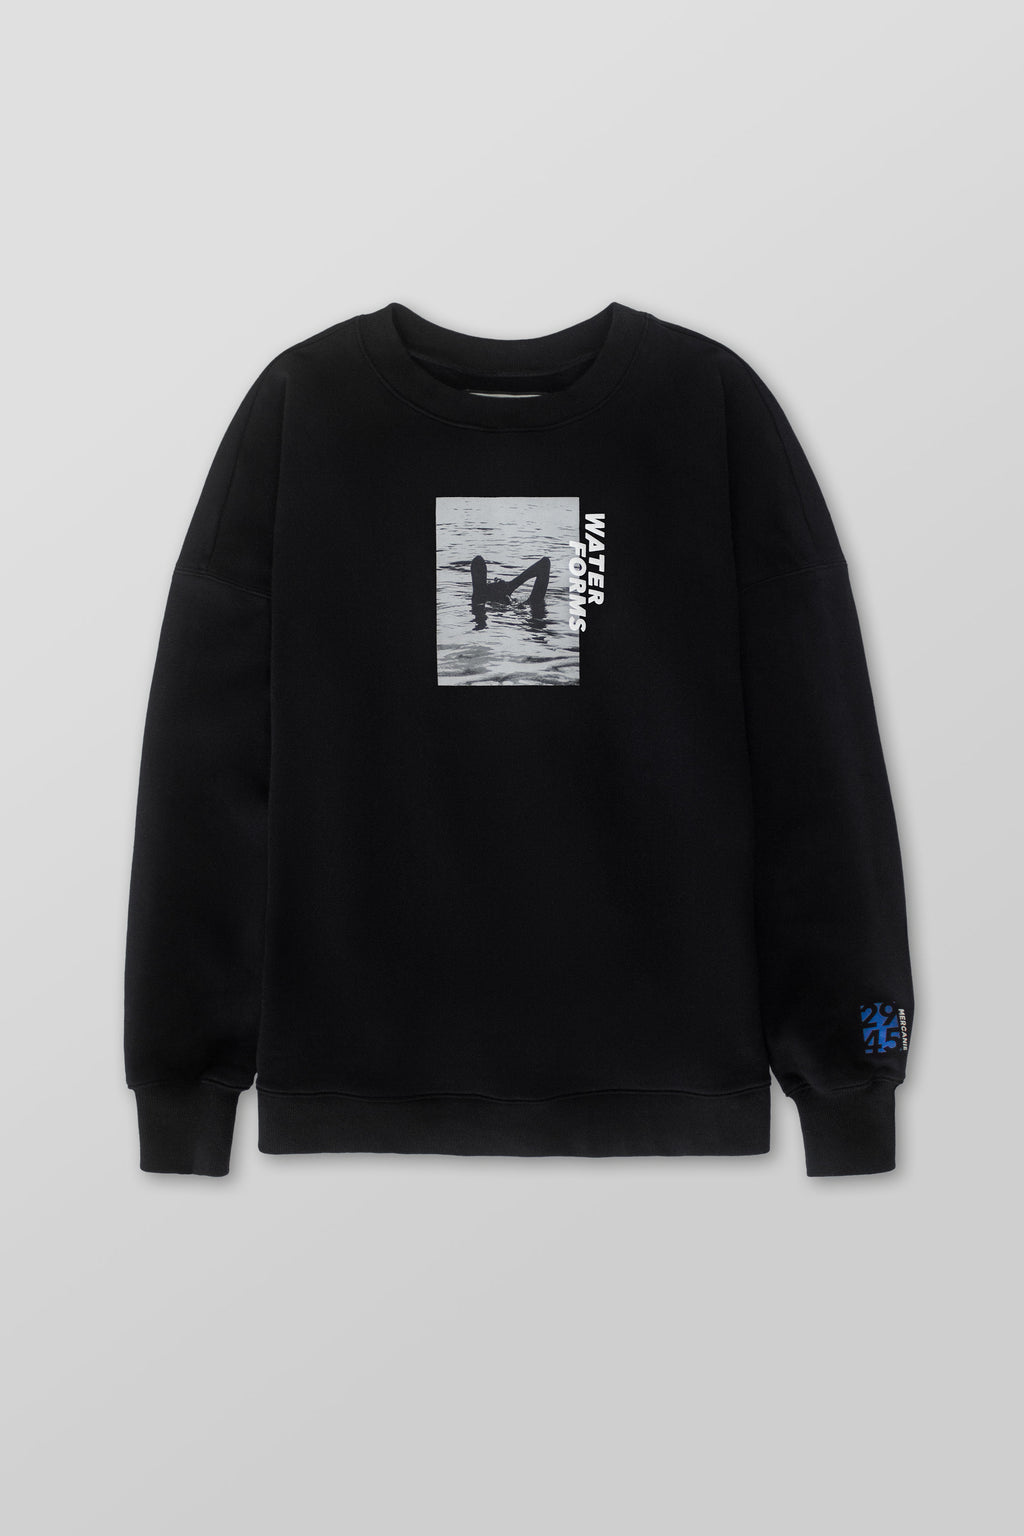 'Woman Silhouette' Sweatshirt (Black) - Mercanie